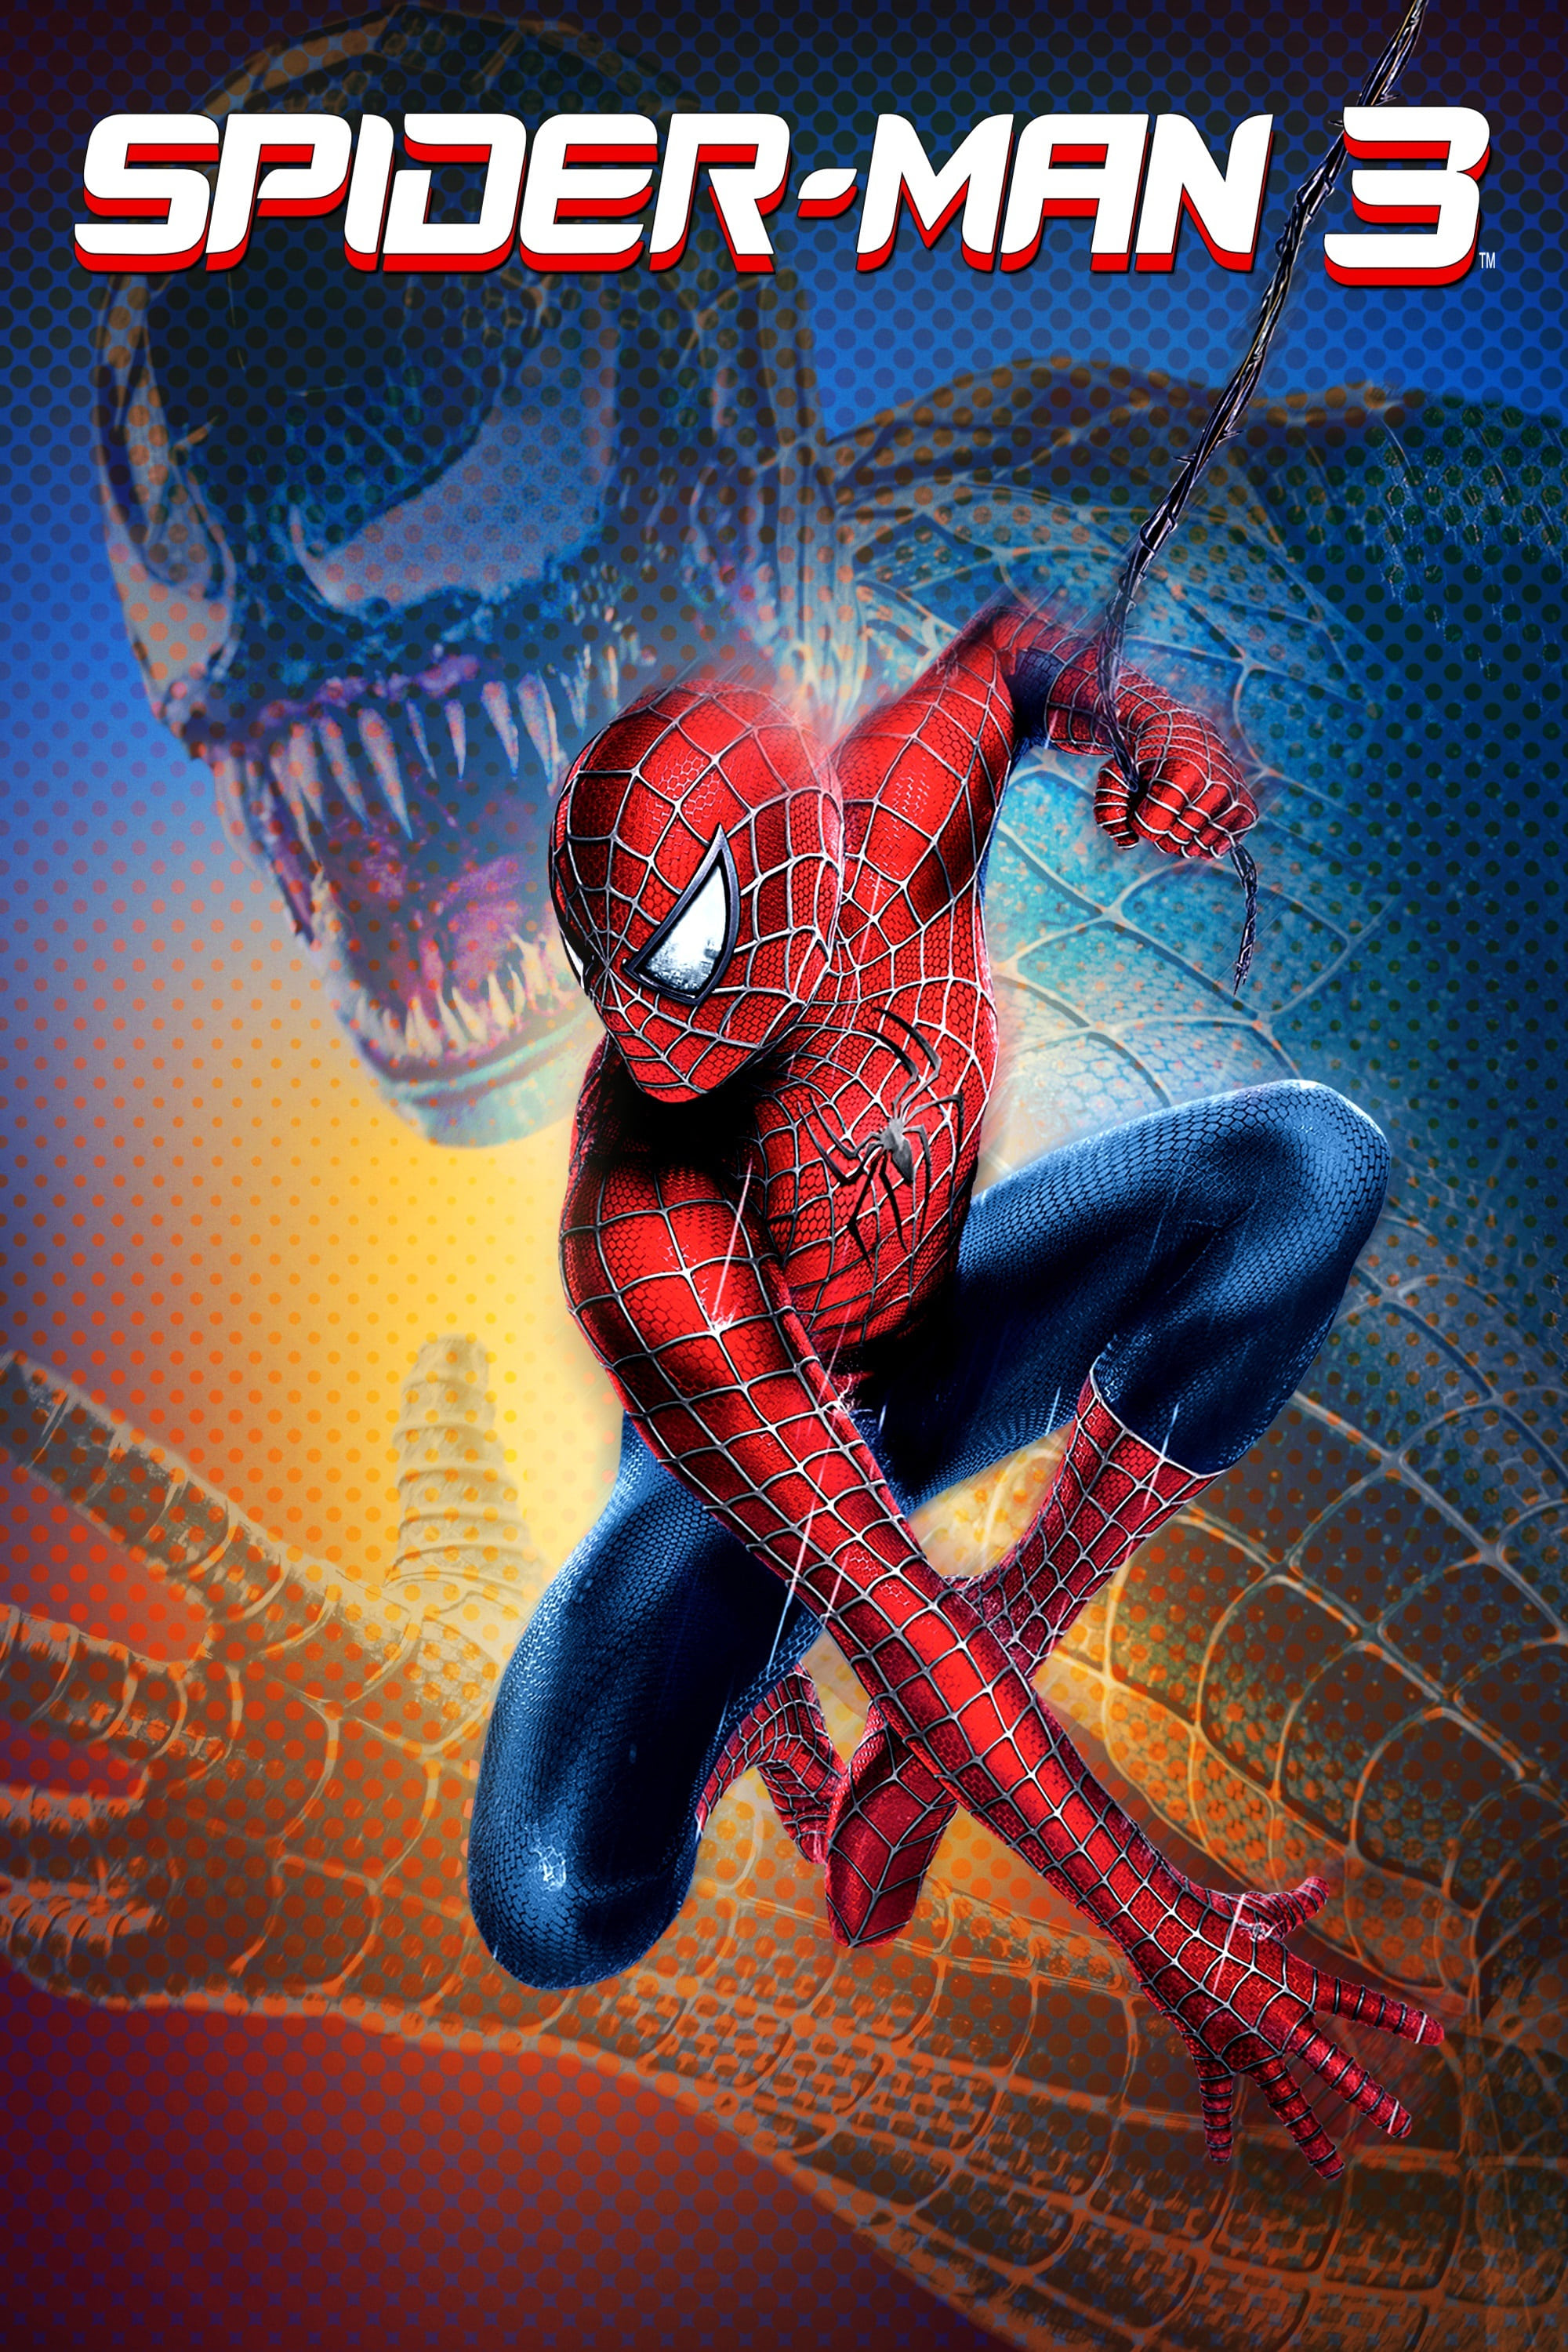 image for Spider-Man 3